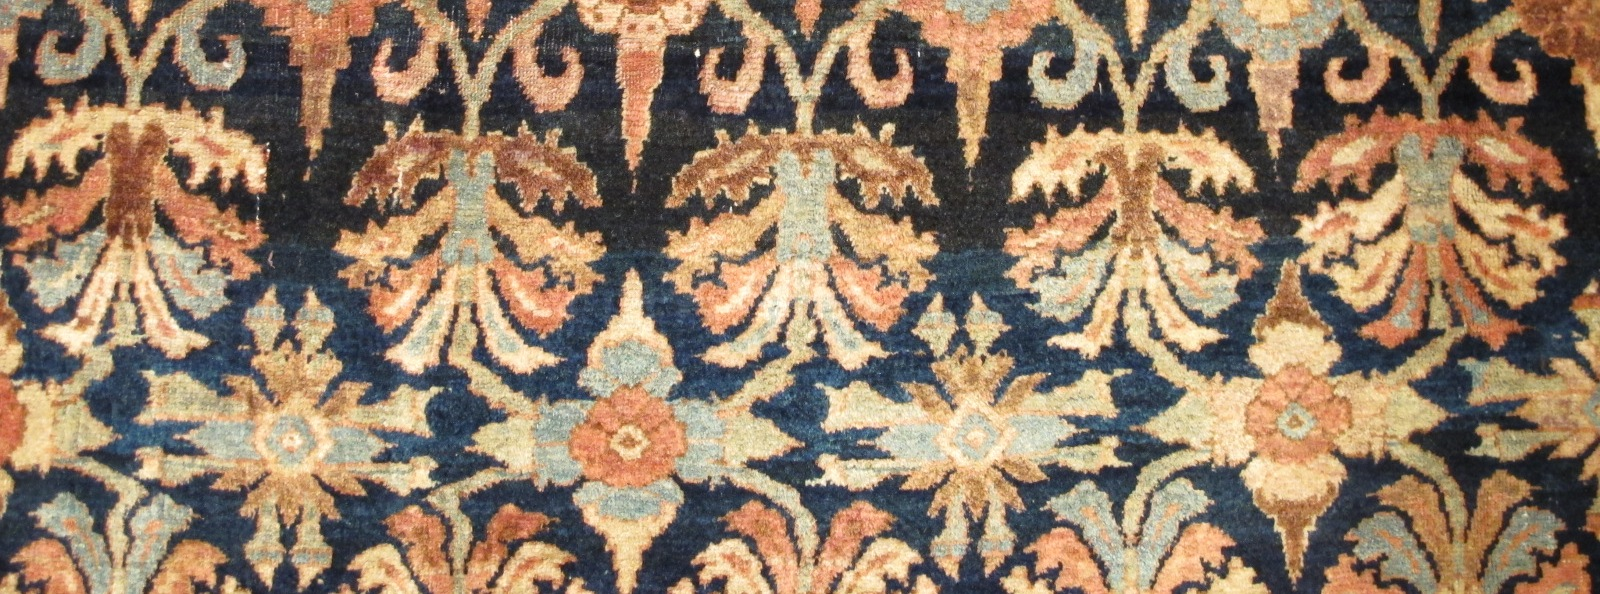 Antique Rugs | Showroom | Los Angeles